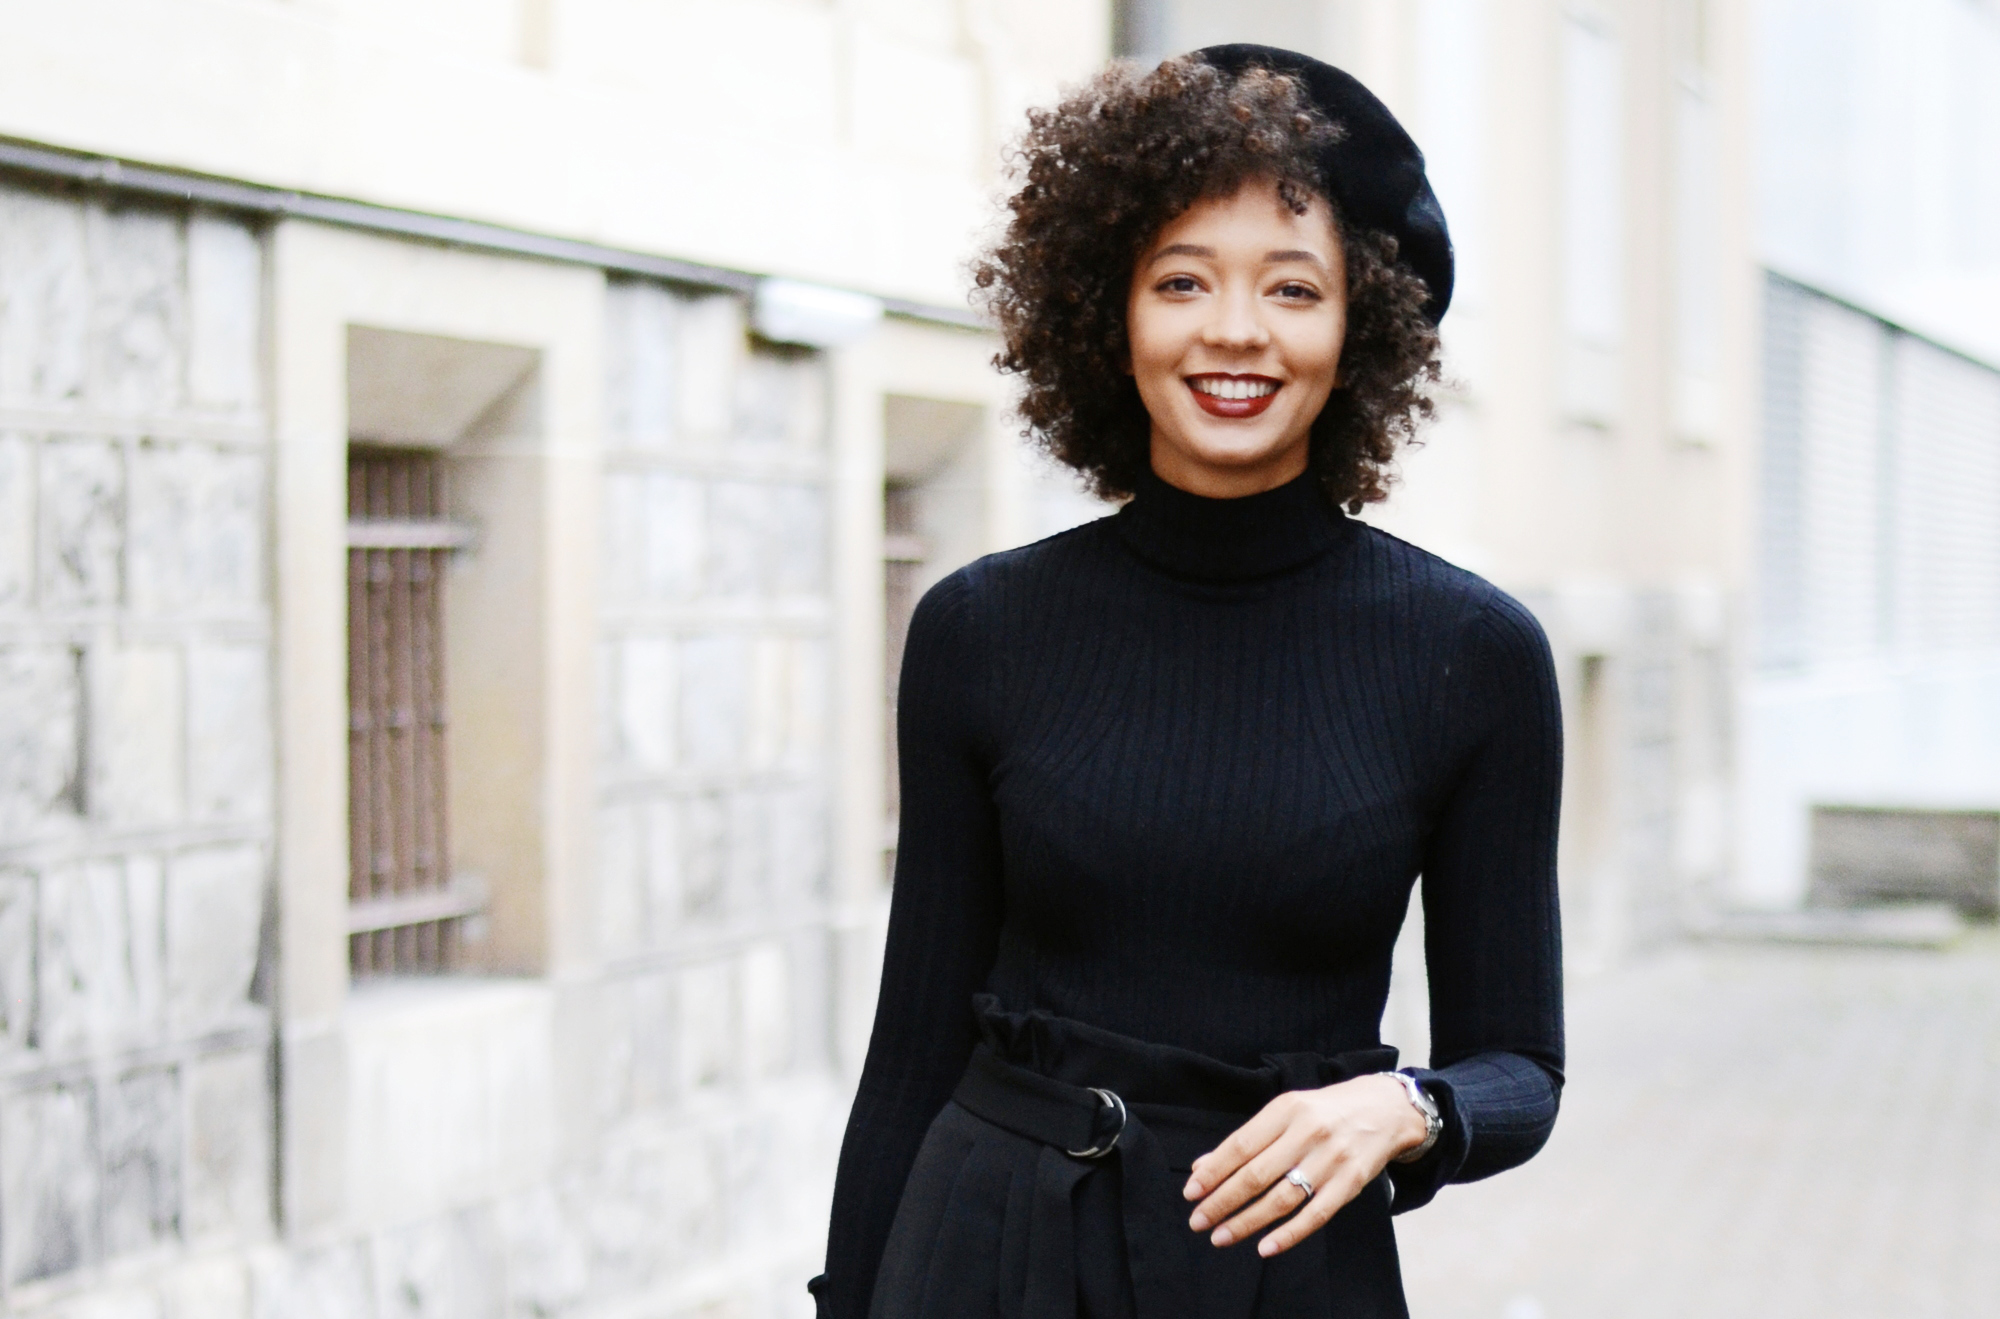 mercredie-blog-mode-geneve-suisse-fashion-blogger-all-black-outfit-chic-nars-audacious-lipstick-rouge-a-levres-louise-curly-hair-afro-cheveux-frises-beret-parisian-look